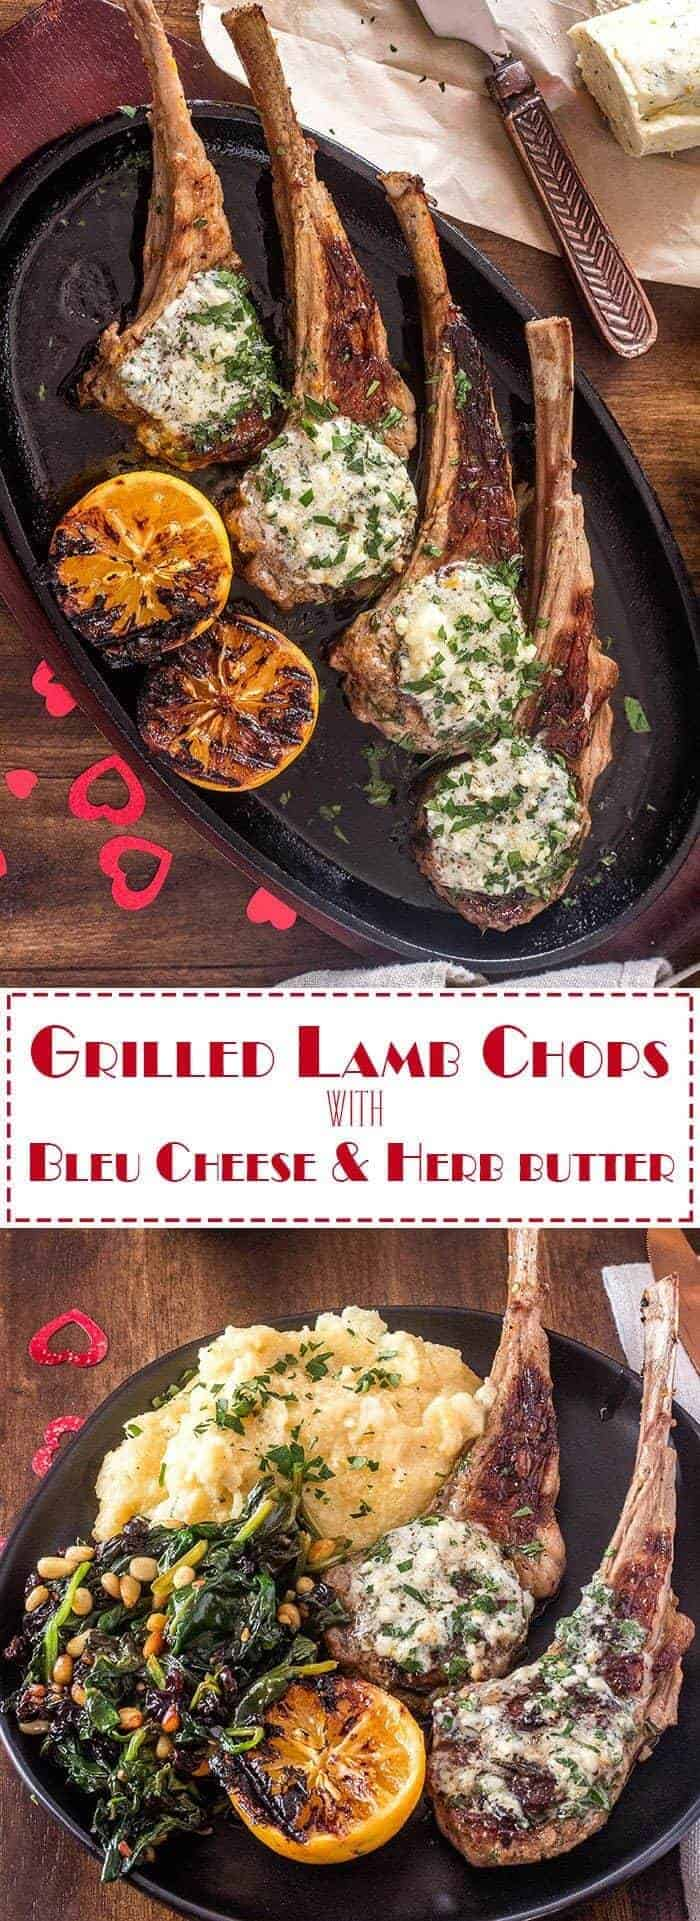 Grilled Lamb Chops With Bleu Cheese and Herb Butter will certainly tantalize the senses, and is a perfect main course for your romantic Valentine's dinner at home. Of course, it is also elegant enough for a dinner party, and while this recipe is written for two, it is an easy one to scale up! Valentine's Day Dinner for Two | Grilled Lamb Chops | Lamb and Bleu Cheese Butter | Low Carb Lamb Recipes | Dinner for Two | Lamb and Spinach | Roman Style Recipes